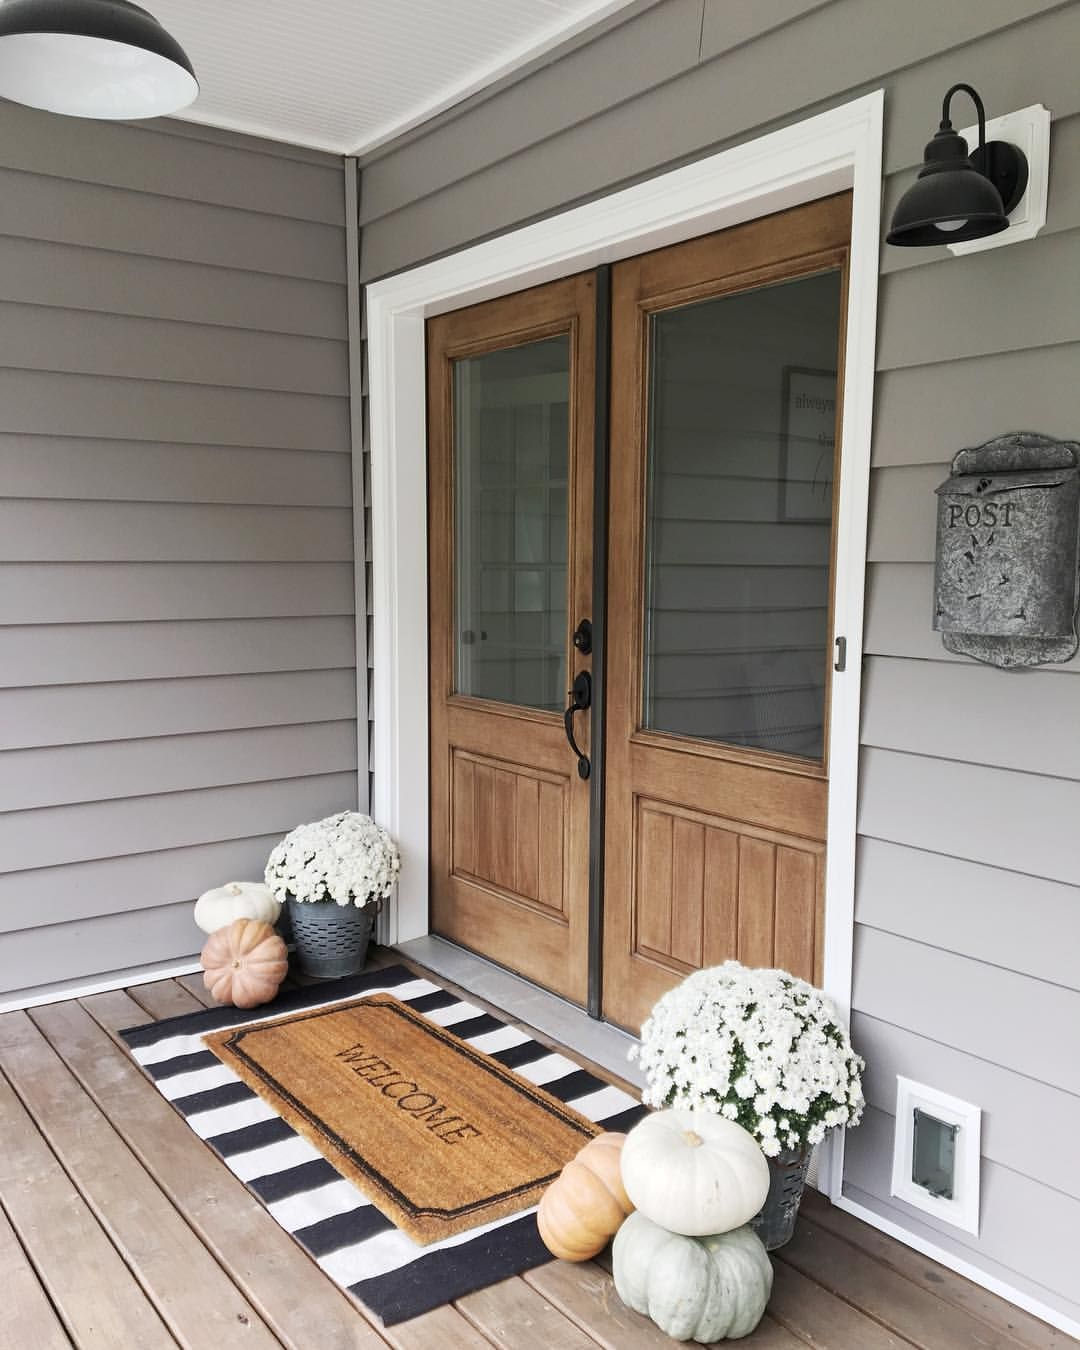 20 Amazing Front Porch Ideas You Must Try In 2018: Happy Thursday! 🍂 Sharing A Front Porch Pic With My White